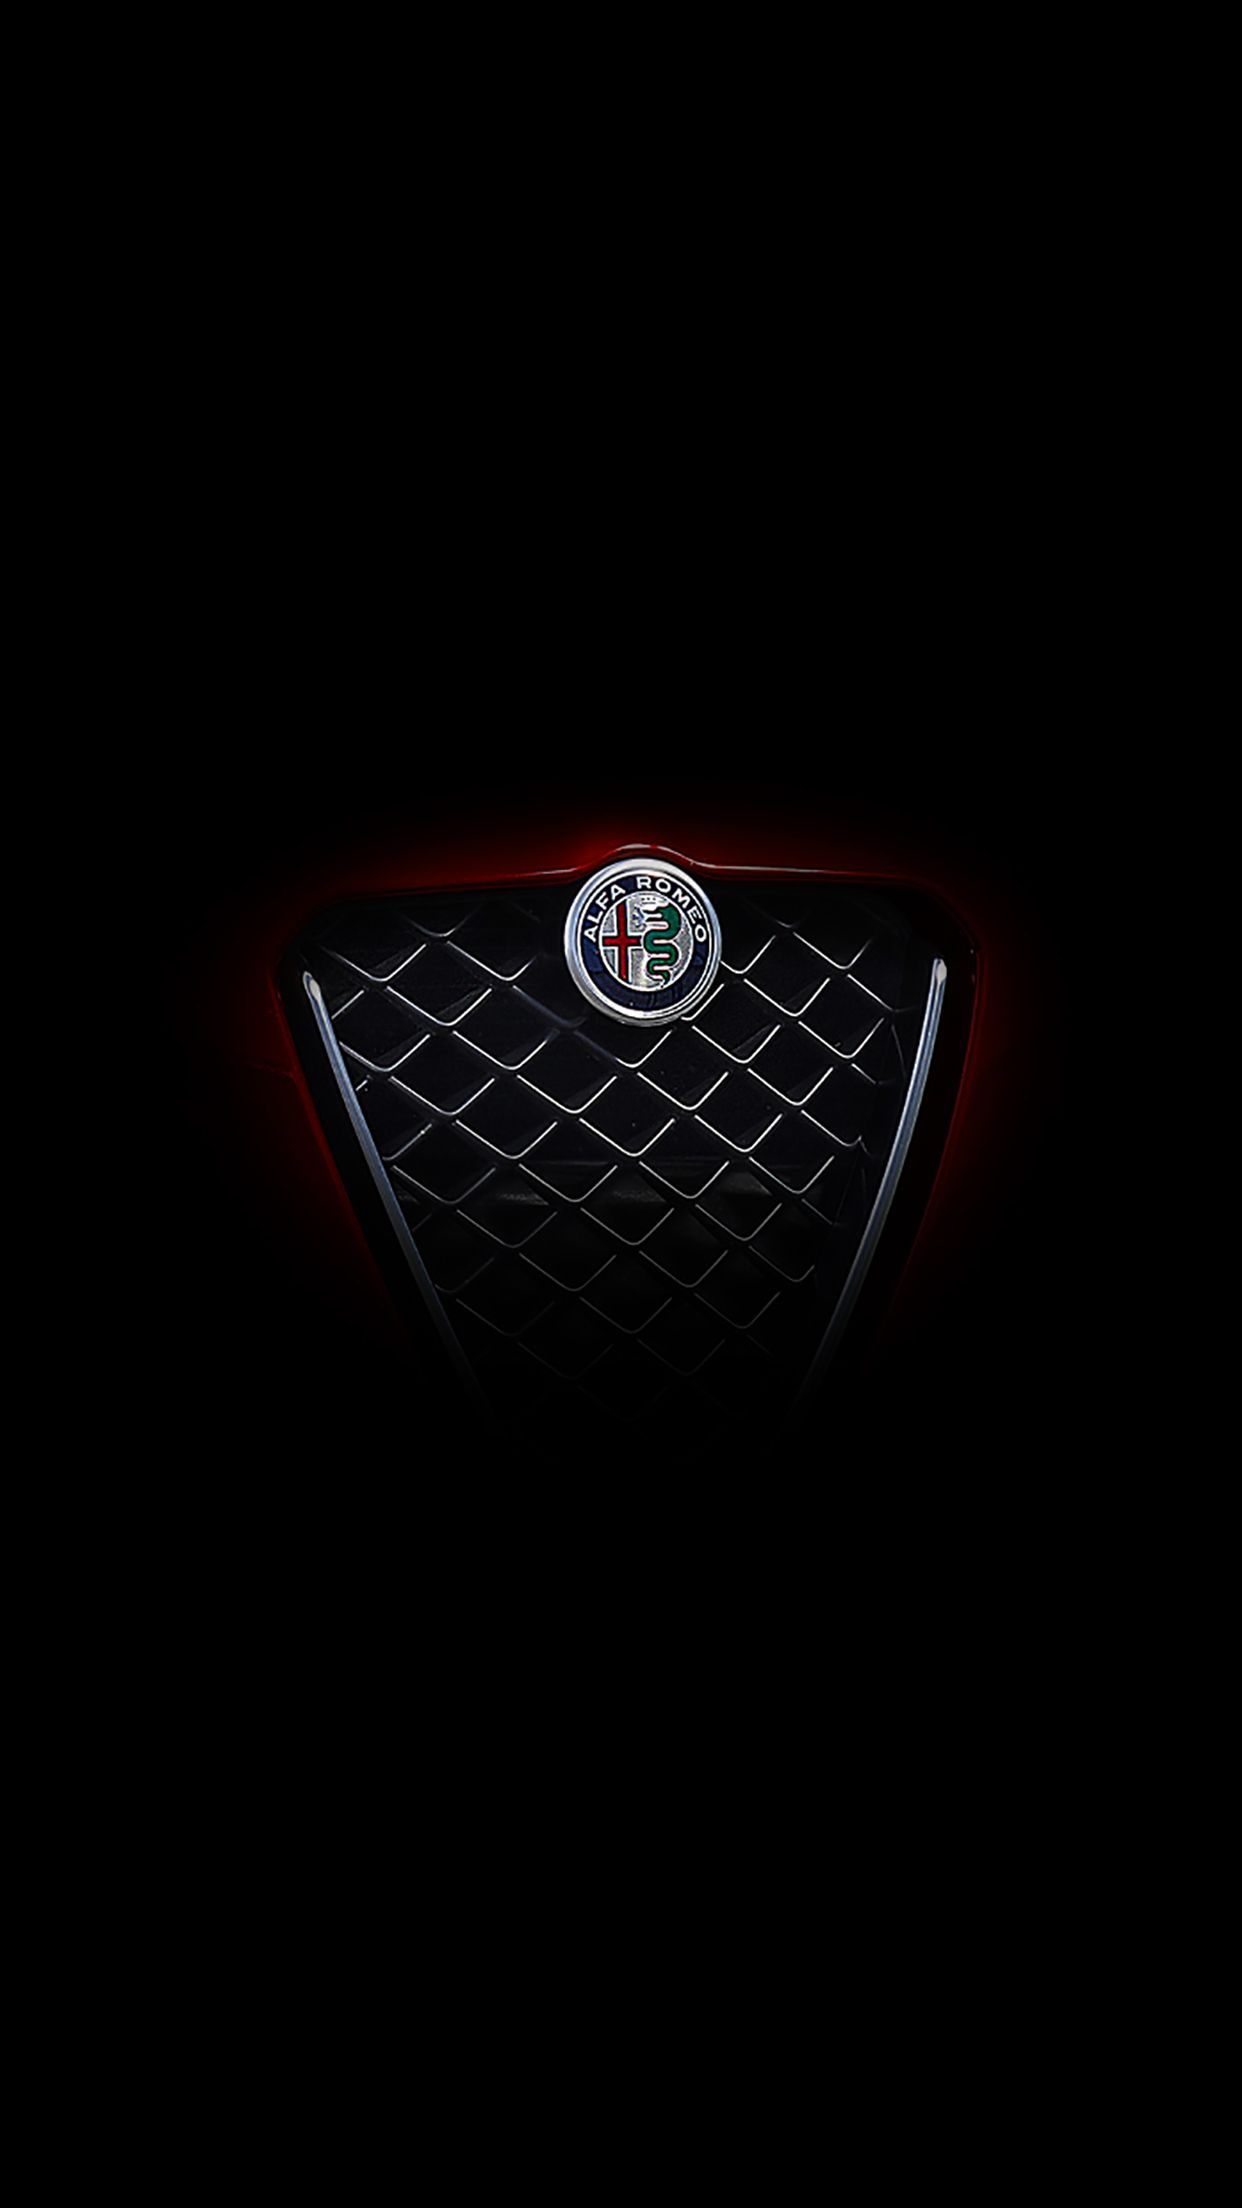 Pin By Gordon Verrall On Alfa Pinterest Alfa Romeo Wallpaper